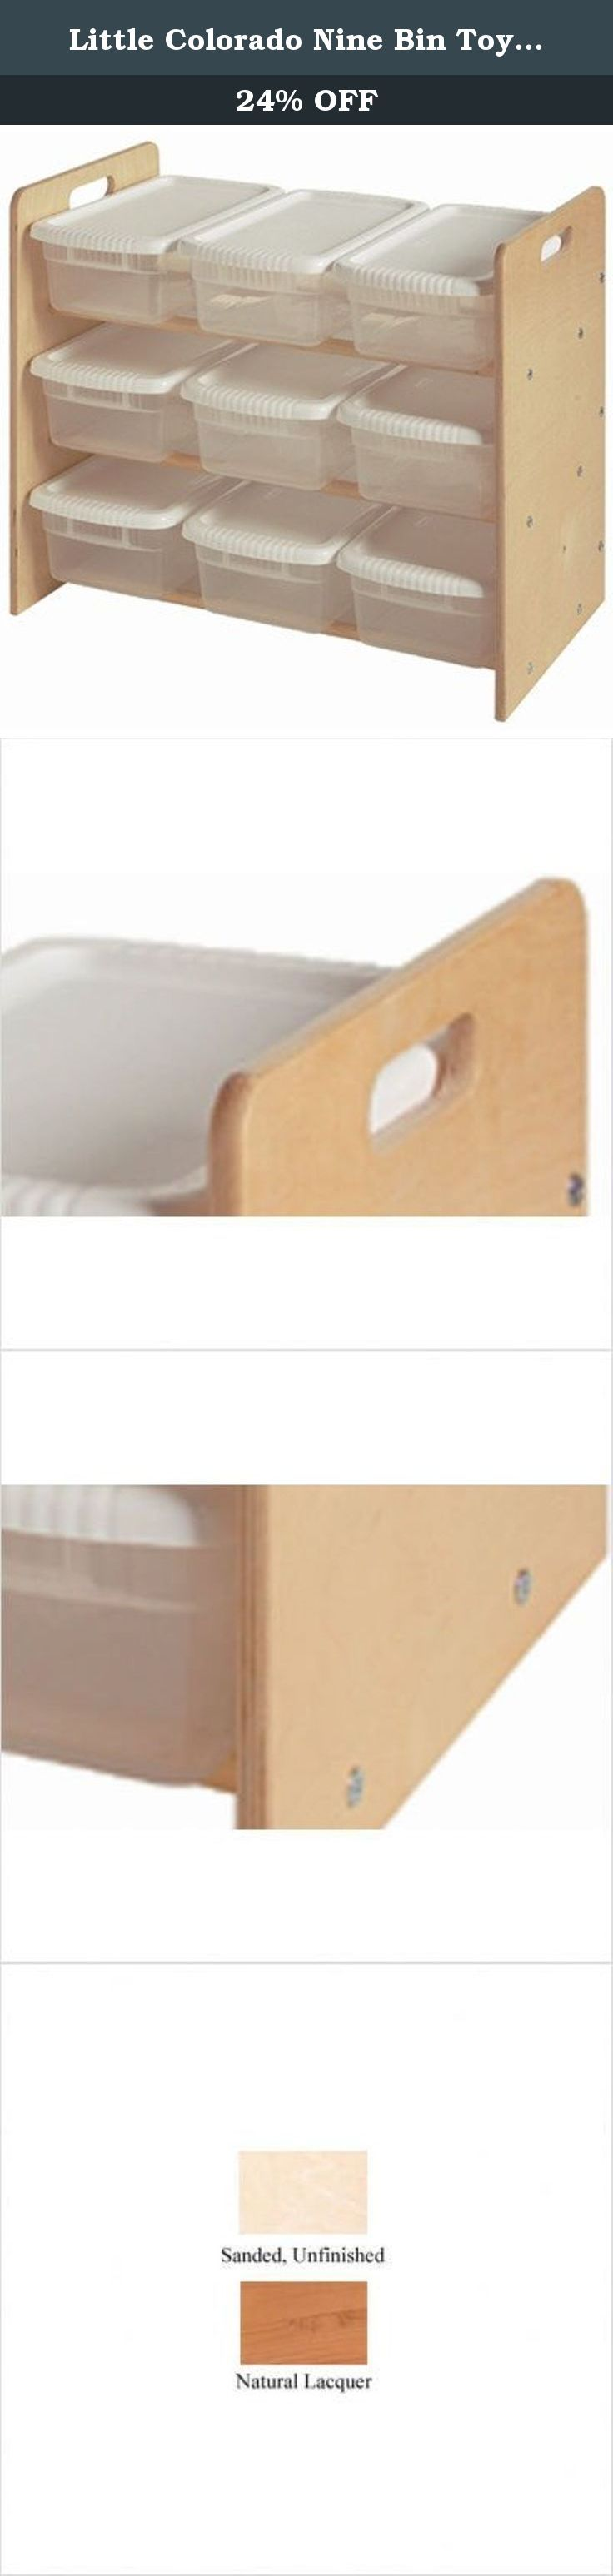 Little Colorado Nine Bin Toy Organizer, Unfinished. This economical unit features a total of nine see-through bins. It is made from baltic birch plywood and birch dowels for added strength and stability.